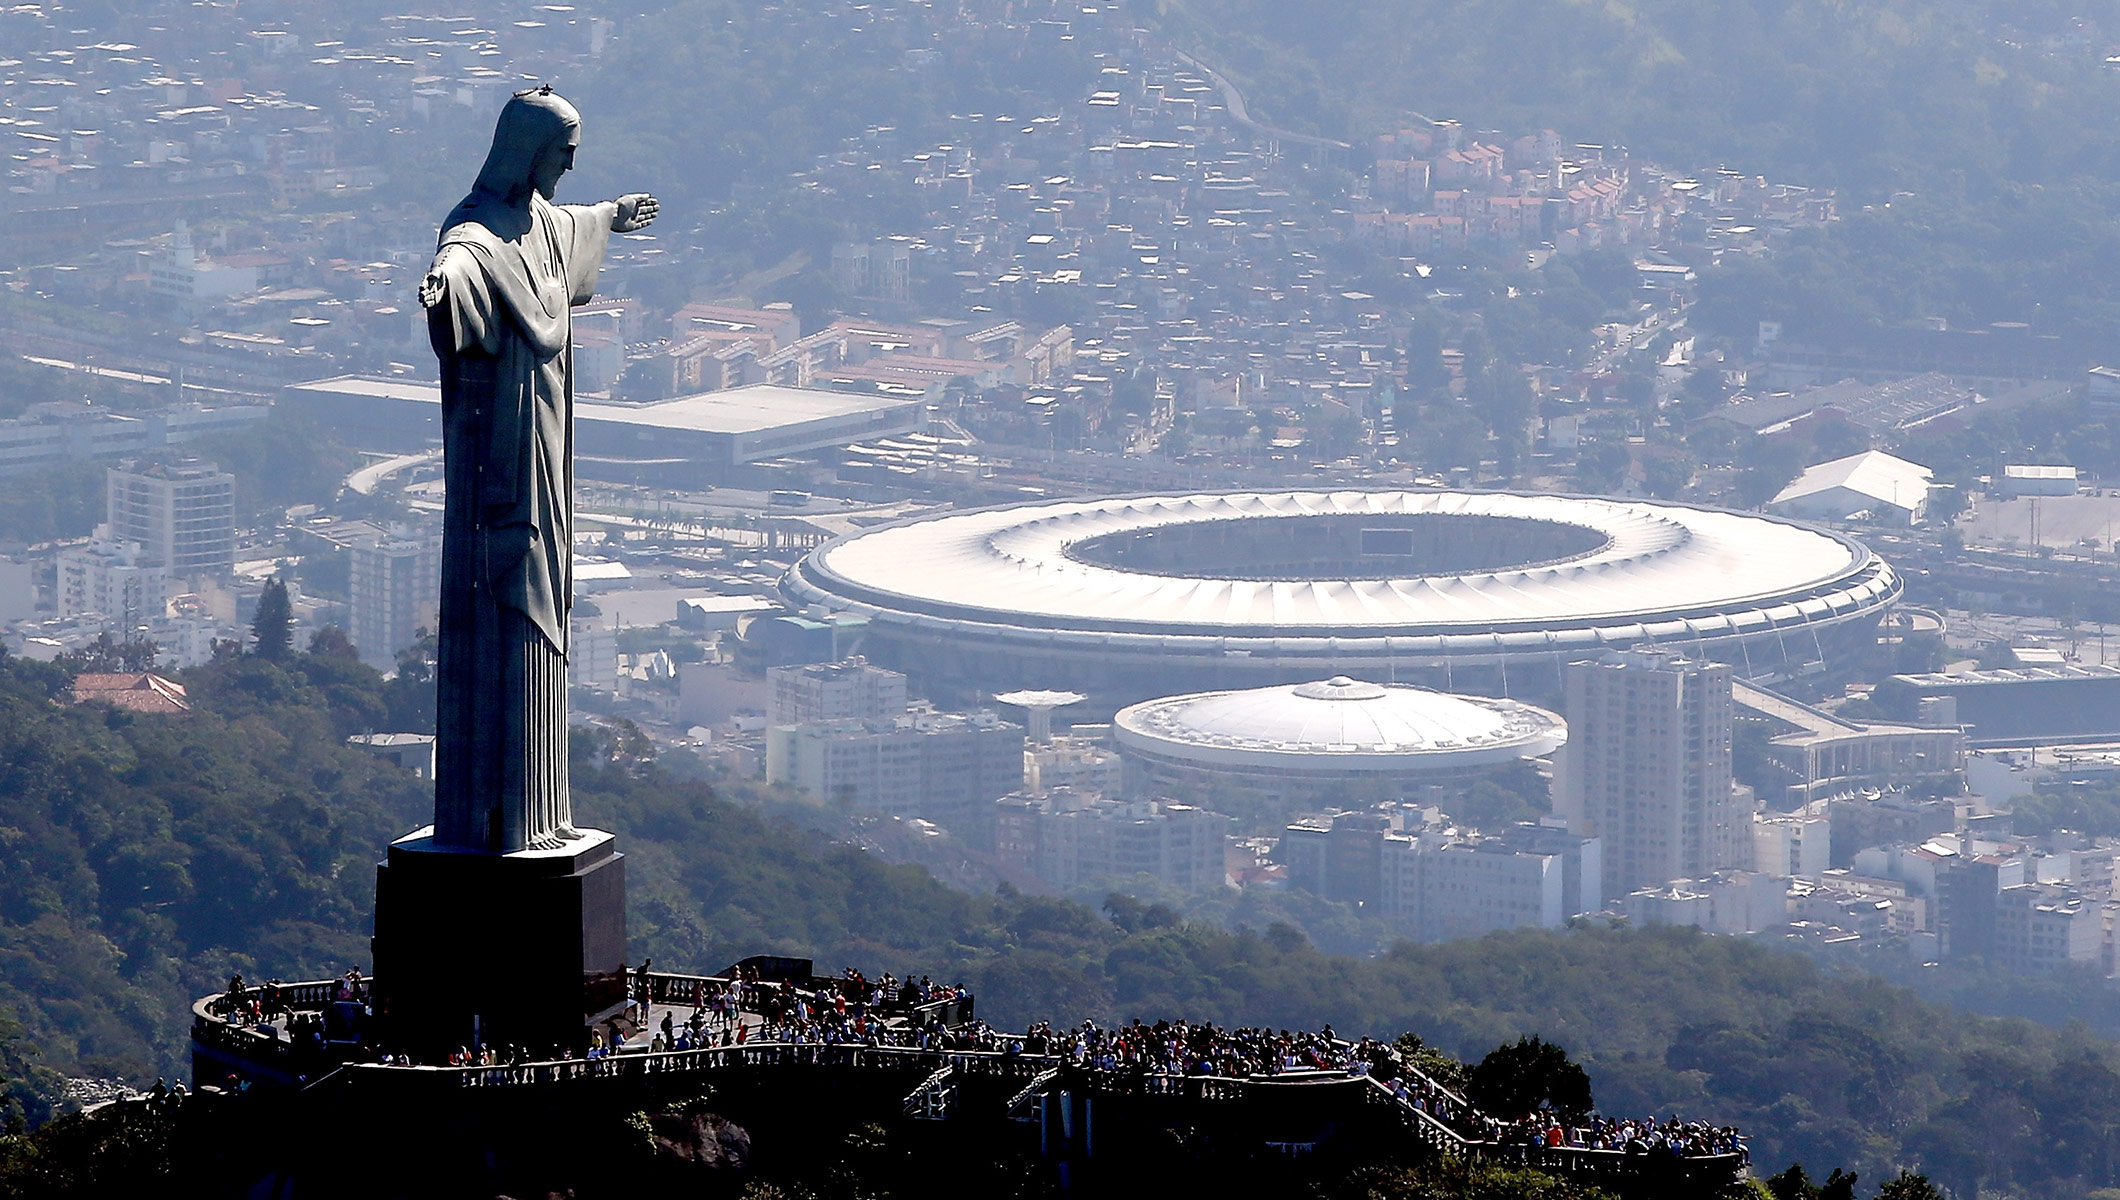 The Rio 2016 Olympic Games competition venues   Olympic News 2120x1200